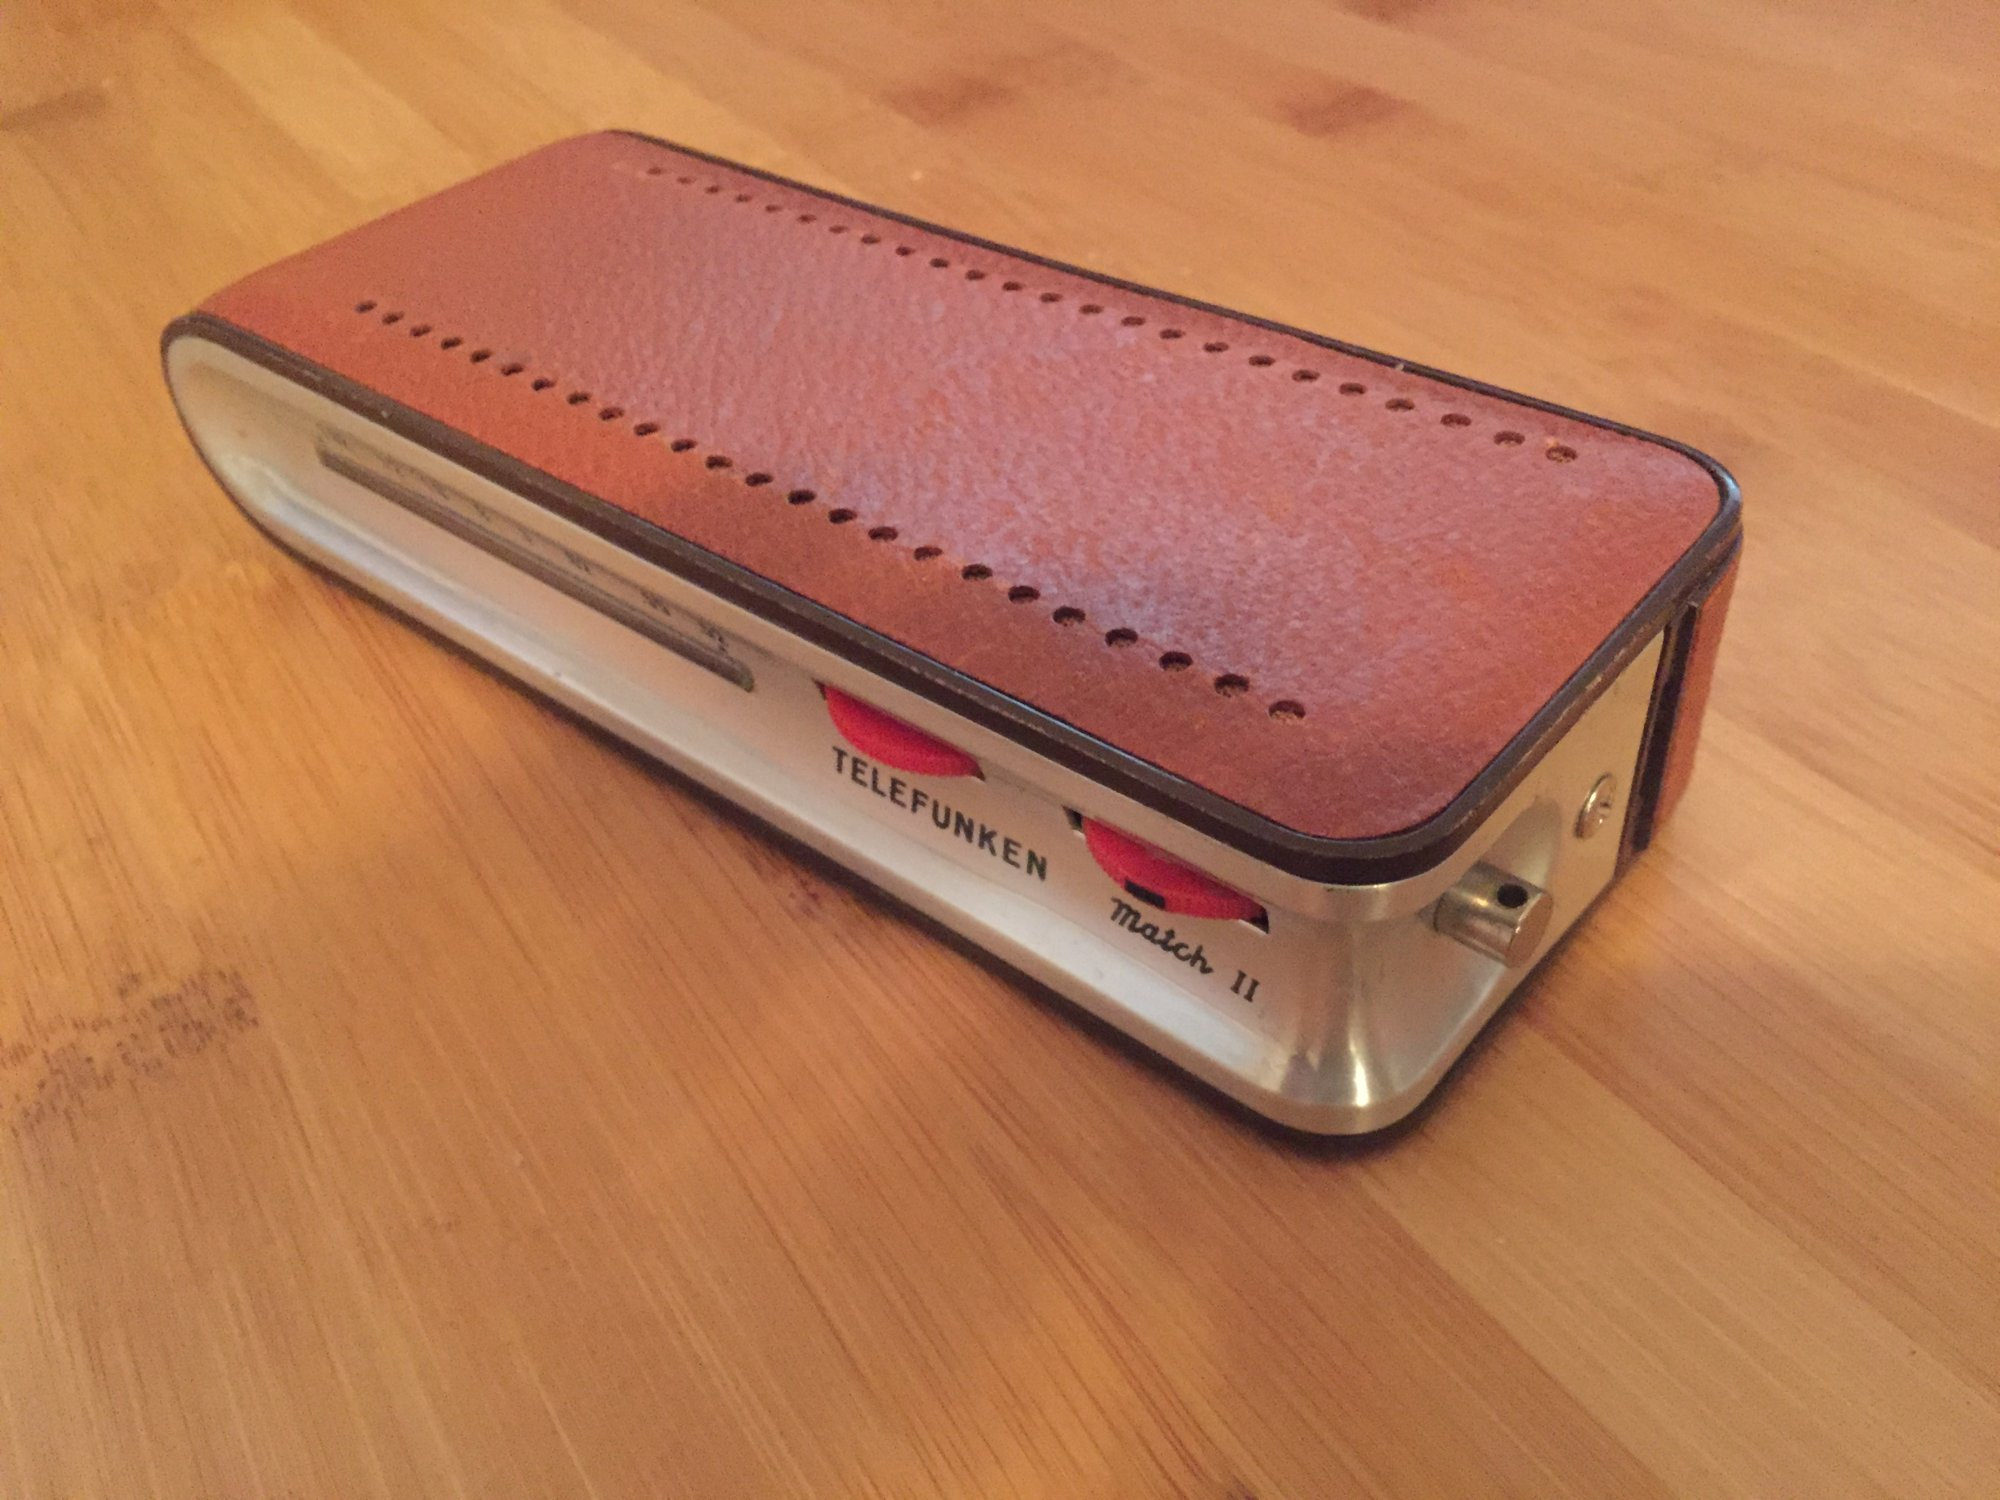 Telefunken Match Ii Transistor Radio 60 Shipped The Classic And One I Have A That Is In Working Order At Time It Had Strap But Somehow Got Lost